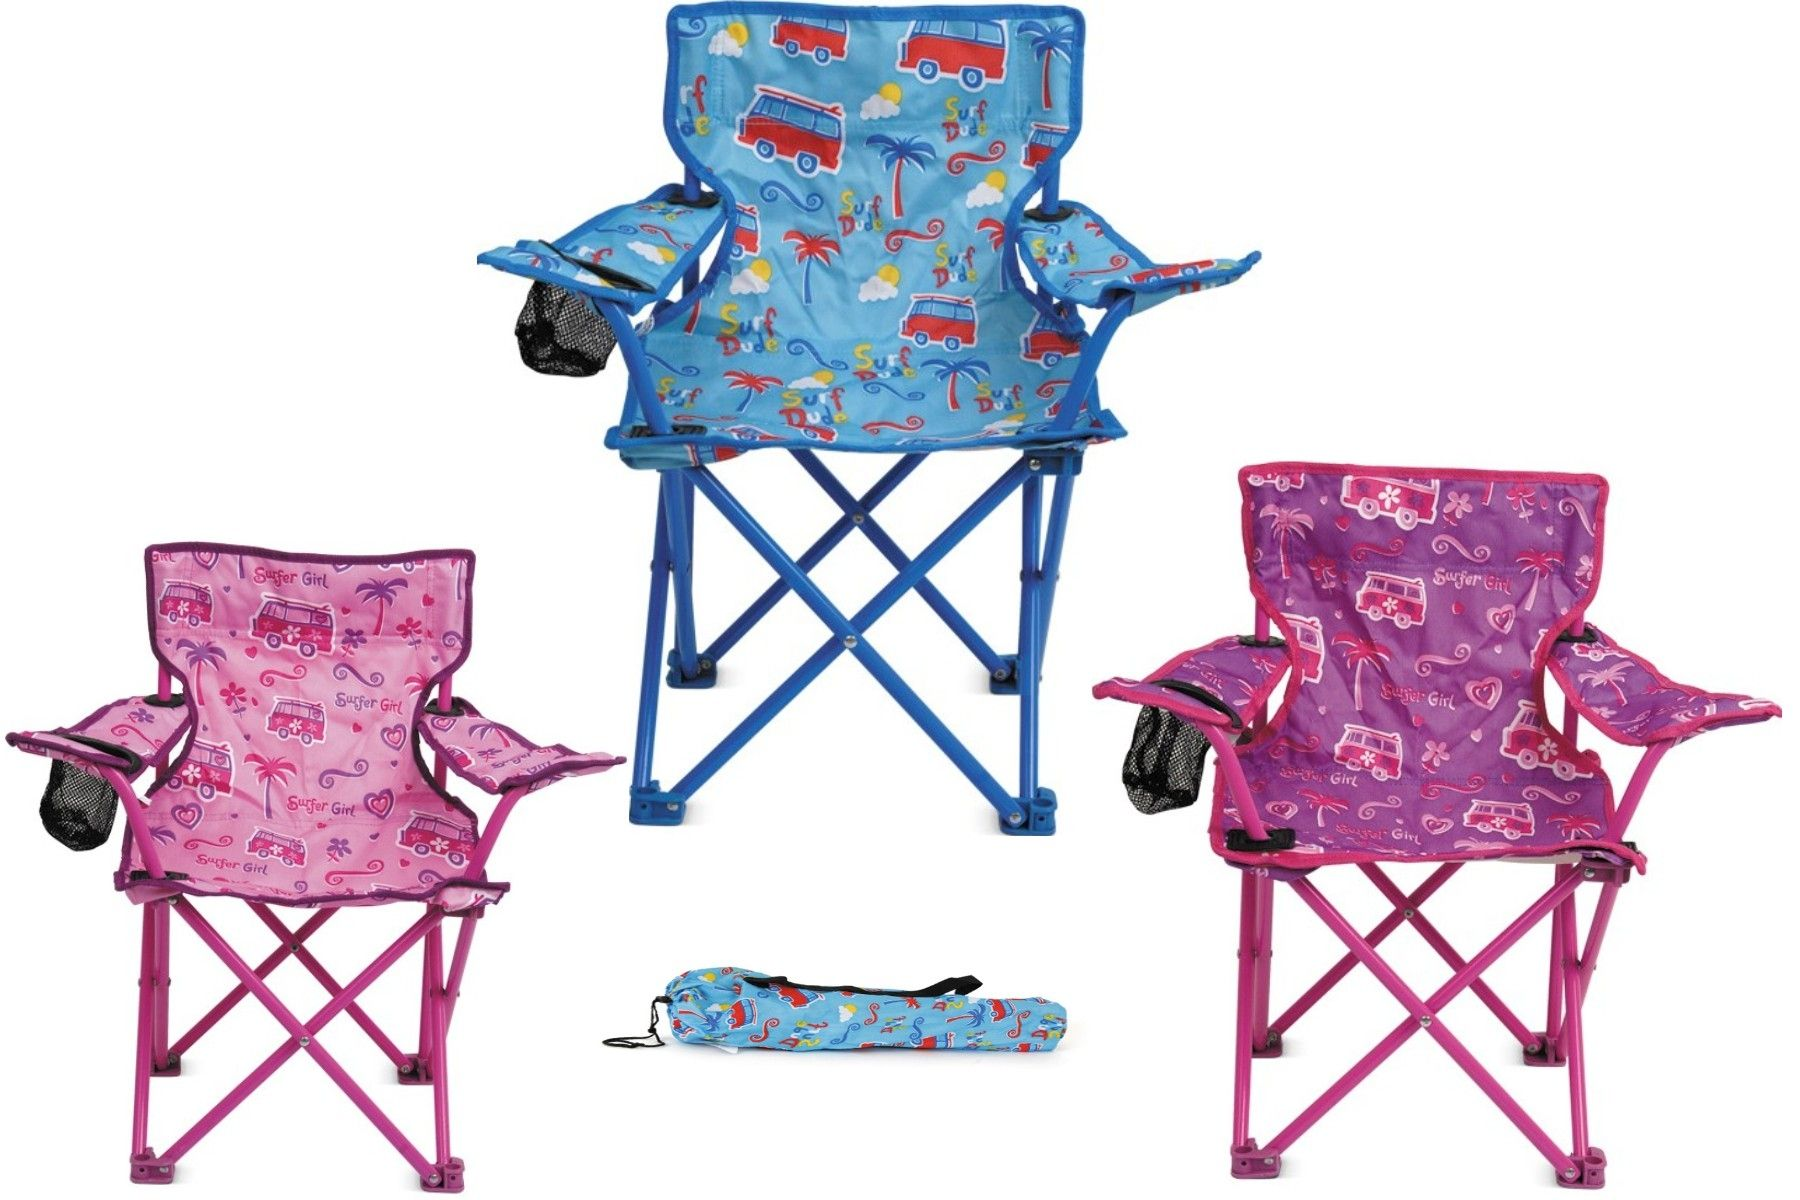 Maccabee Folding Chairs Costco Folding Chairs